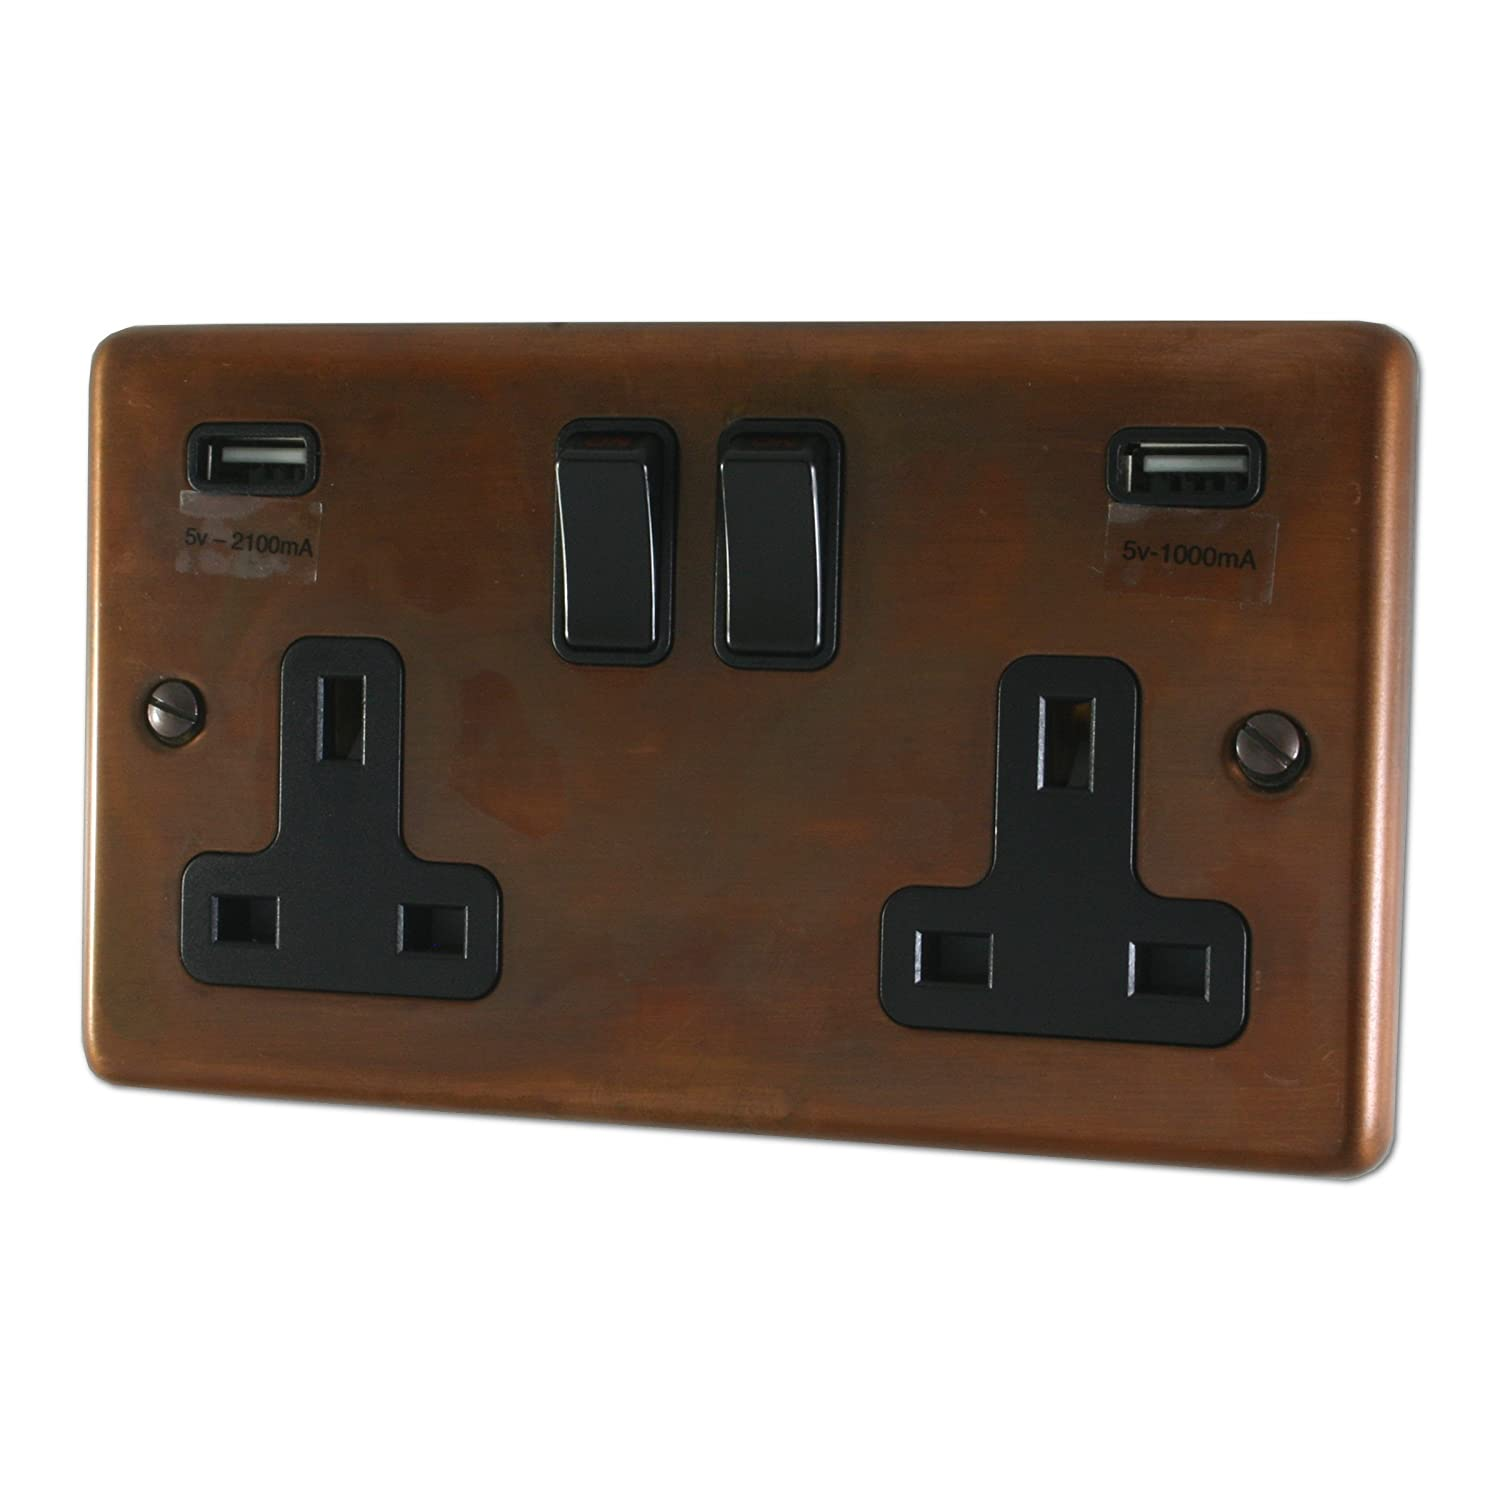 Contour Tarnished Copper Double Socket with USB (Black Switch) - CTC910B G&H Brassware